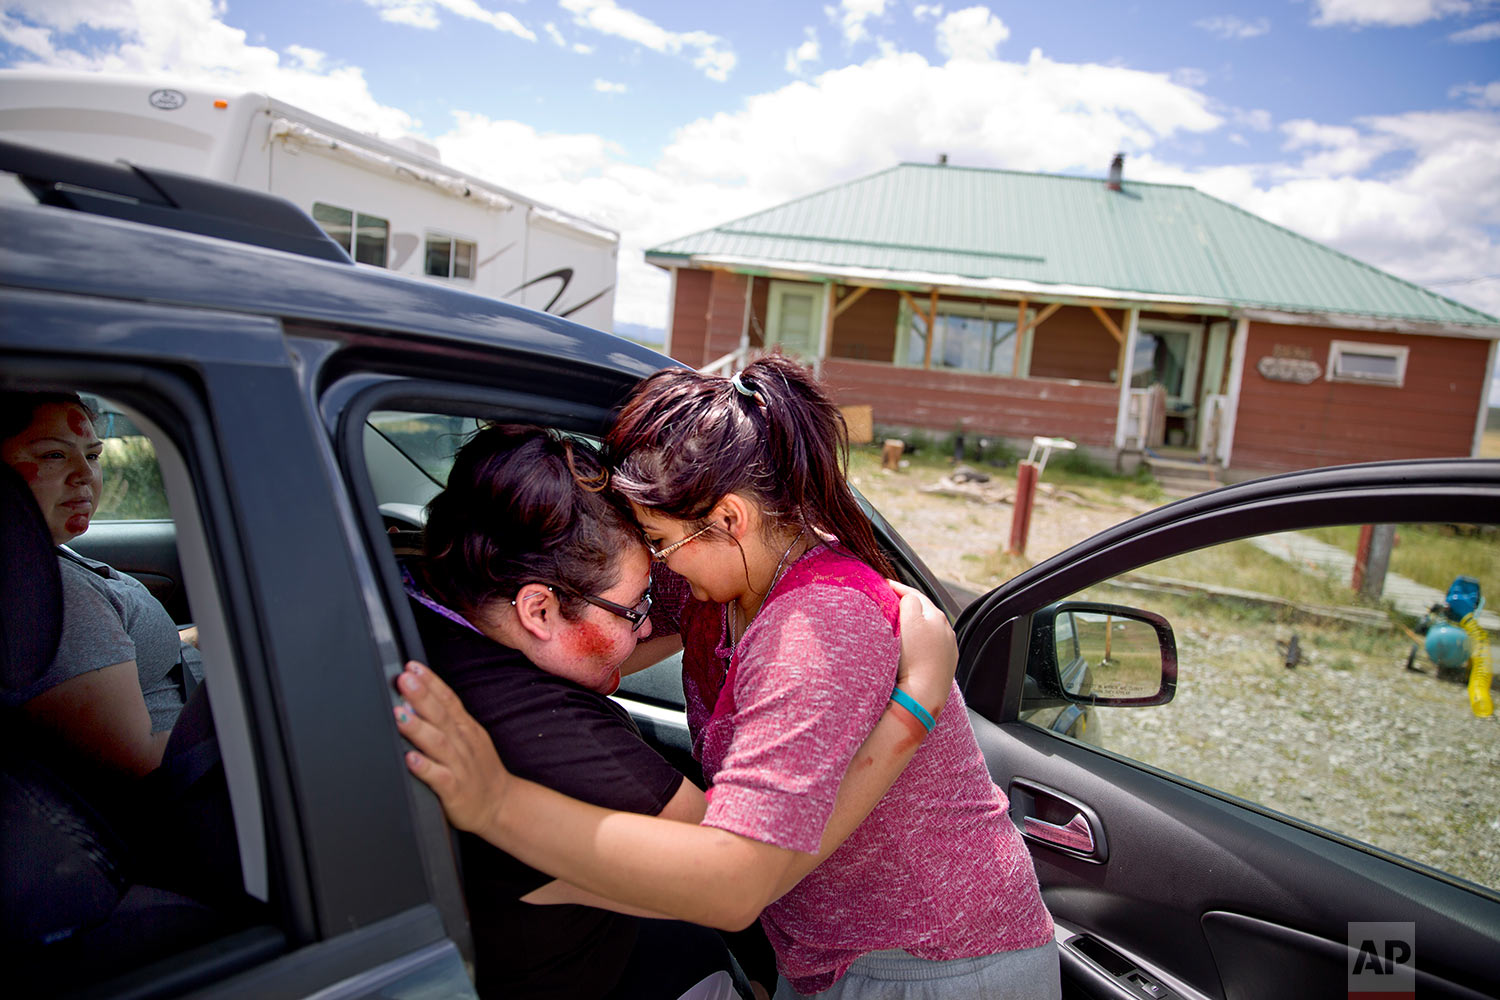 """Kimberly Loring, left, touches her forehead to her little sister, Jonnilyn, 17, as she says goodbye before heading out on a search for their missing sister,Ashley, with their cousin, Lissa Loring, on the Blackfeet Indian Reservation in Browning, Mont., July 11, 2018.""""I'm the older sister. I need to do this,"""" says 24-year-old Kimberly. """"I don't want to search until I'm 80. But if I have to, I will."""" (AP Photo/David Goldman)"""